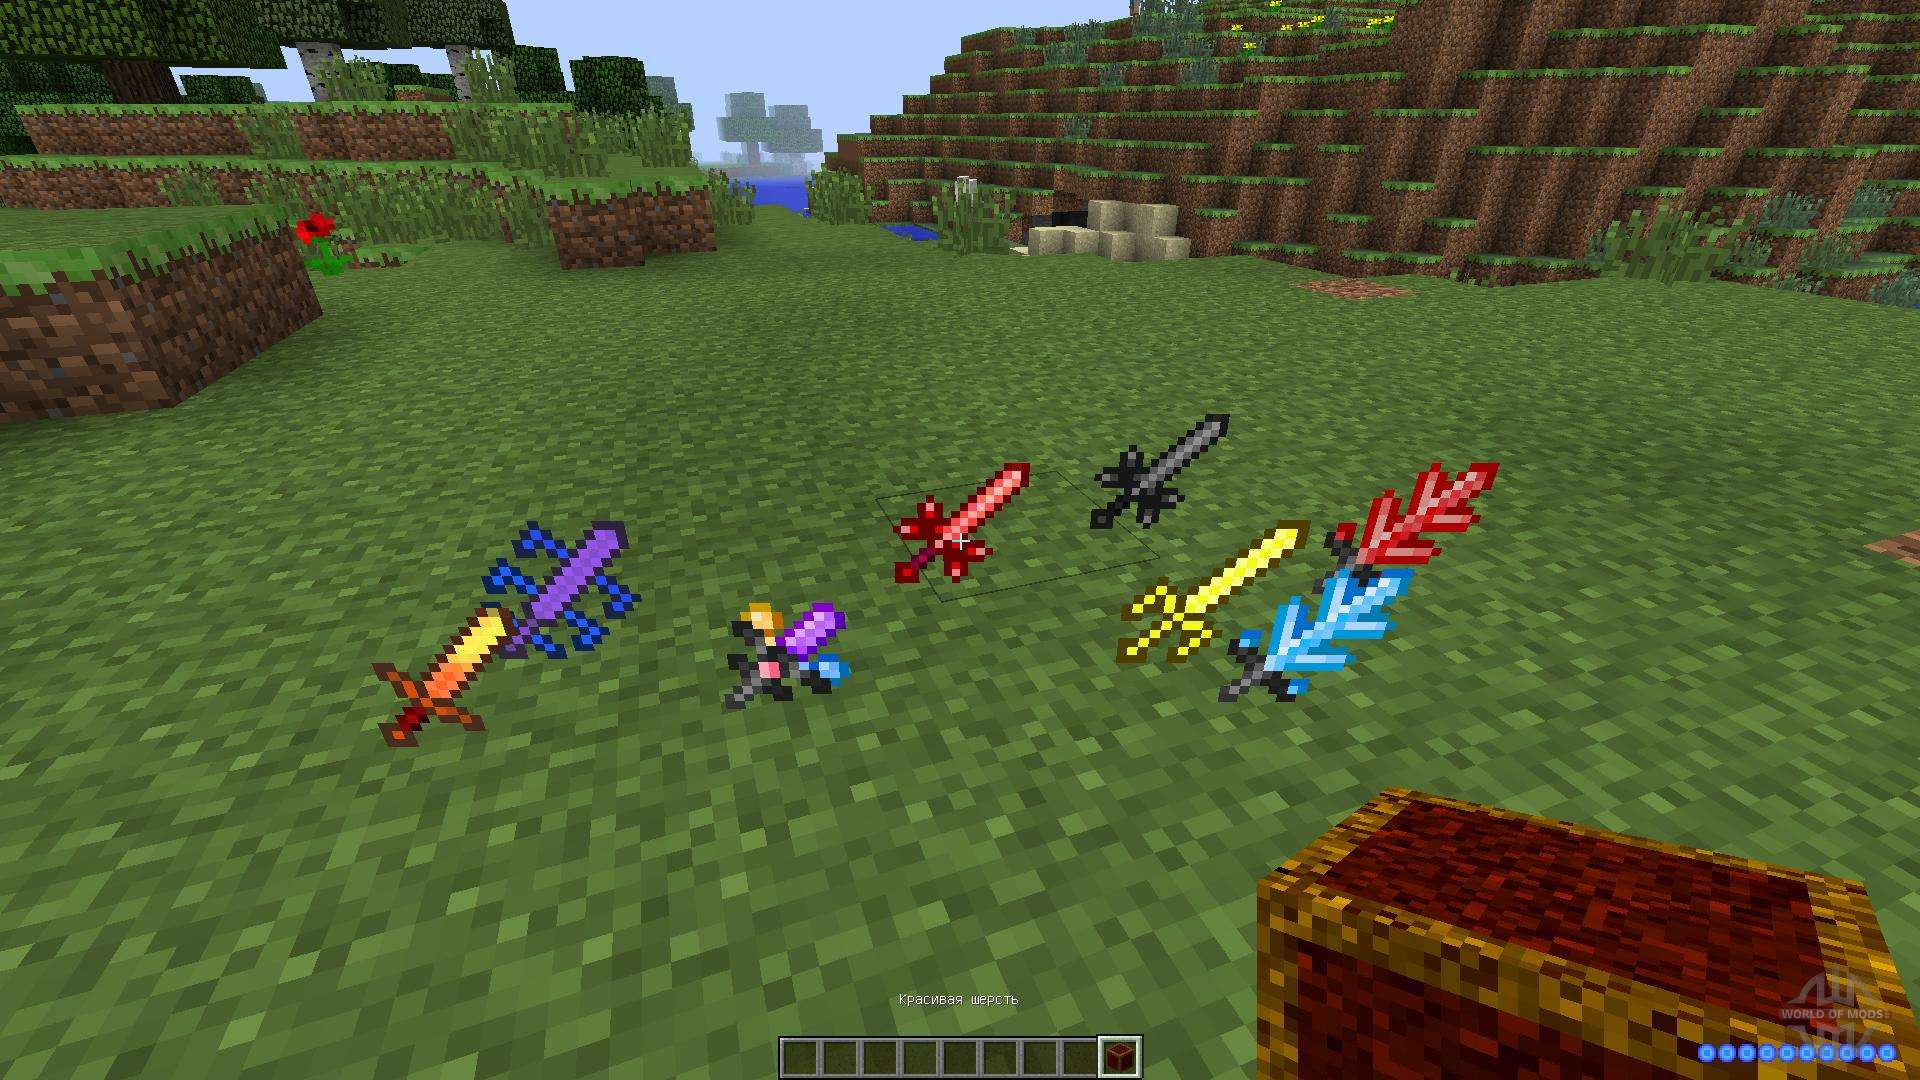 Minecraft: divine rpg (dimensions, bosses, mobs, pets, weapons.